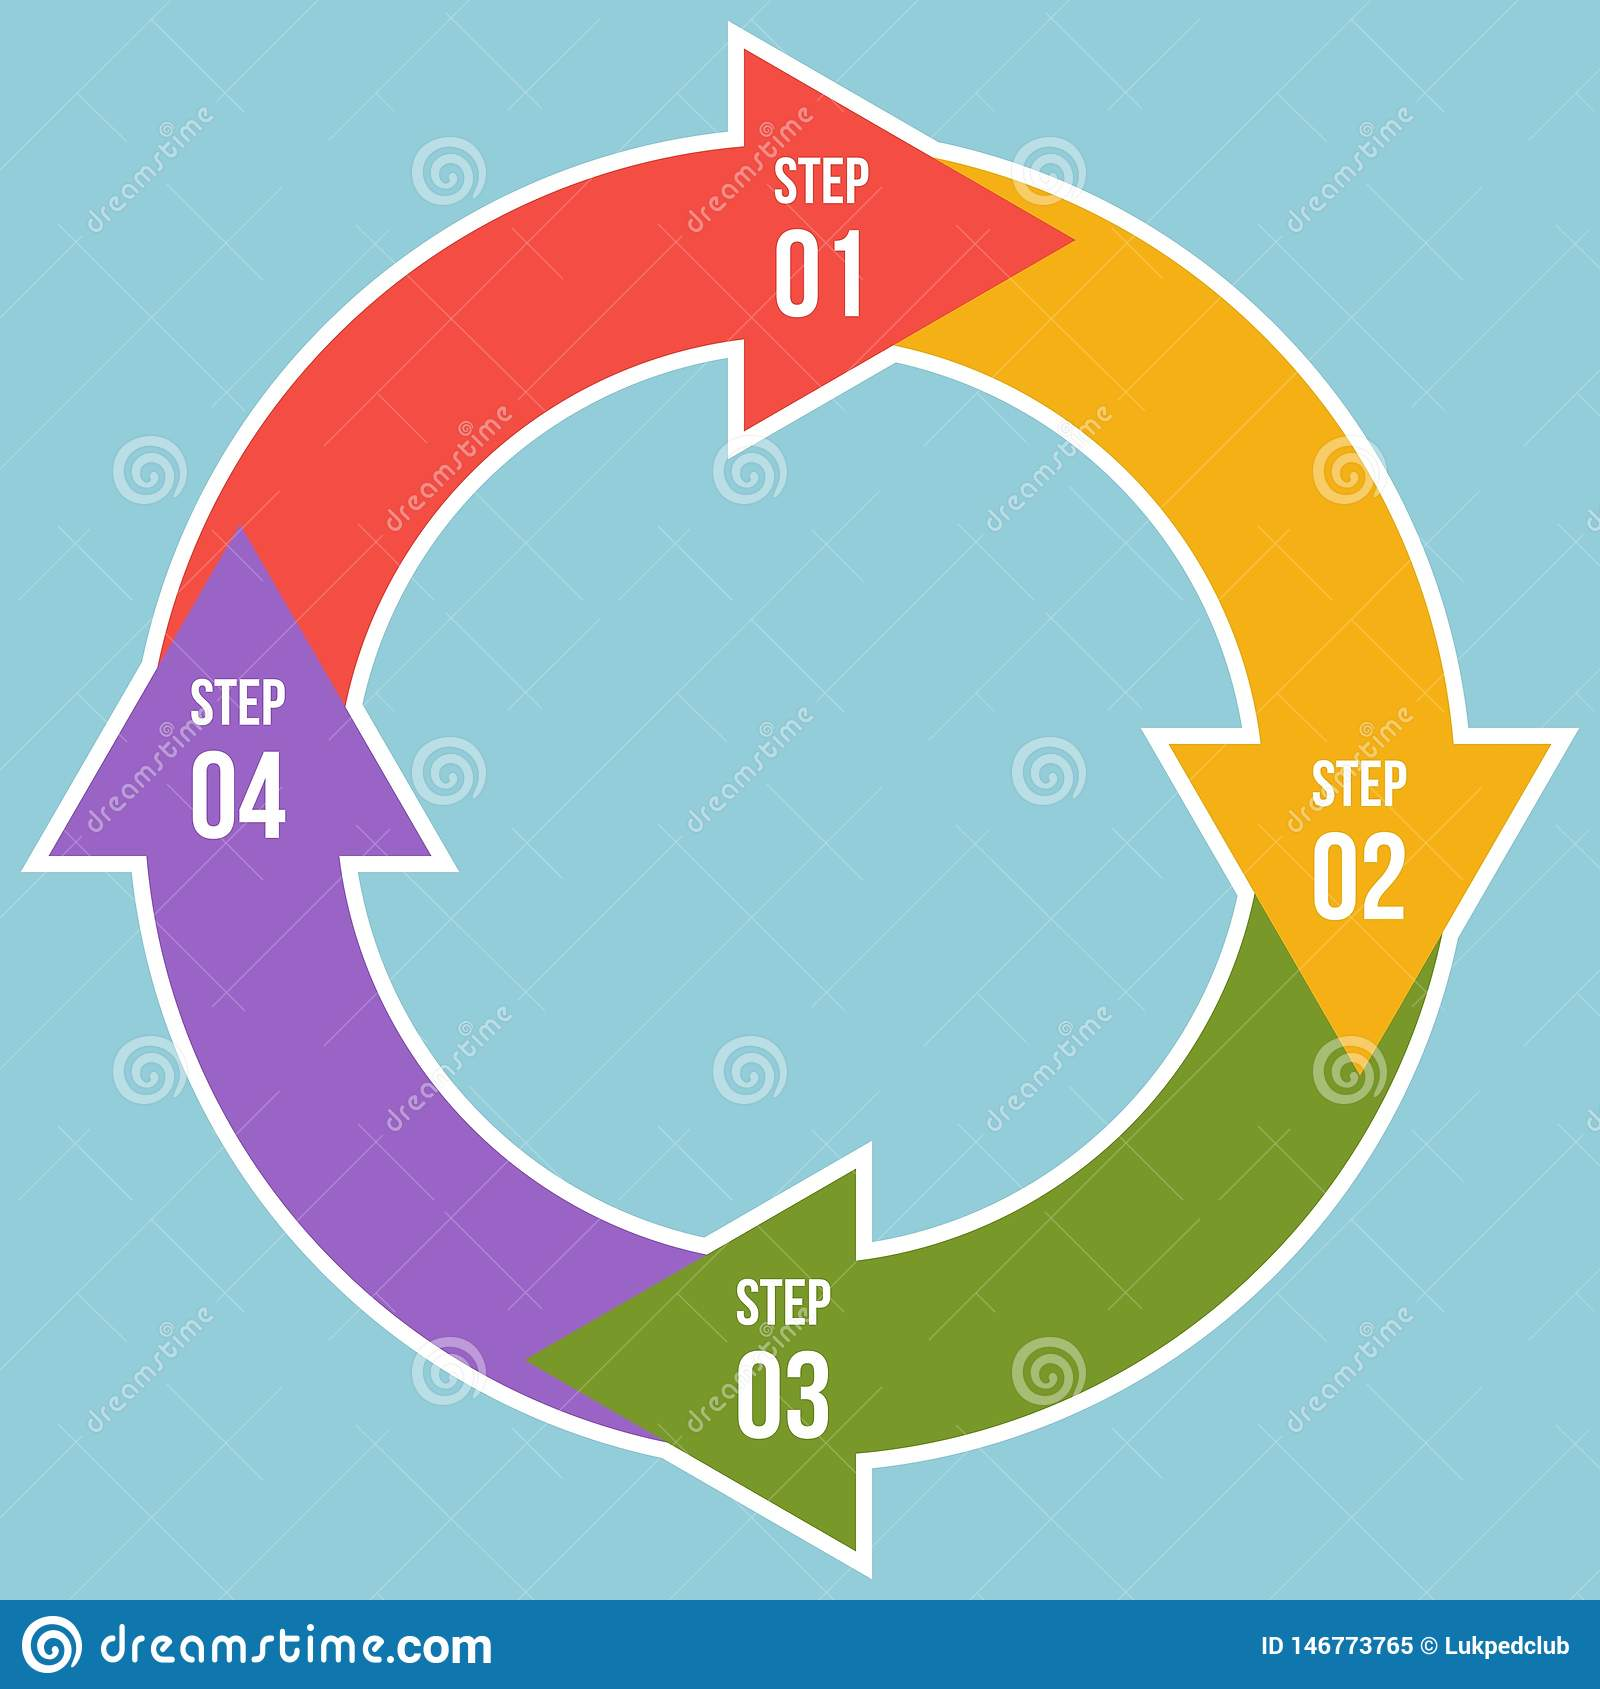 hight resolution of circle chart circle arrows infographic or cycle diagram templates with 4 steps